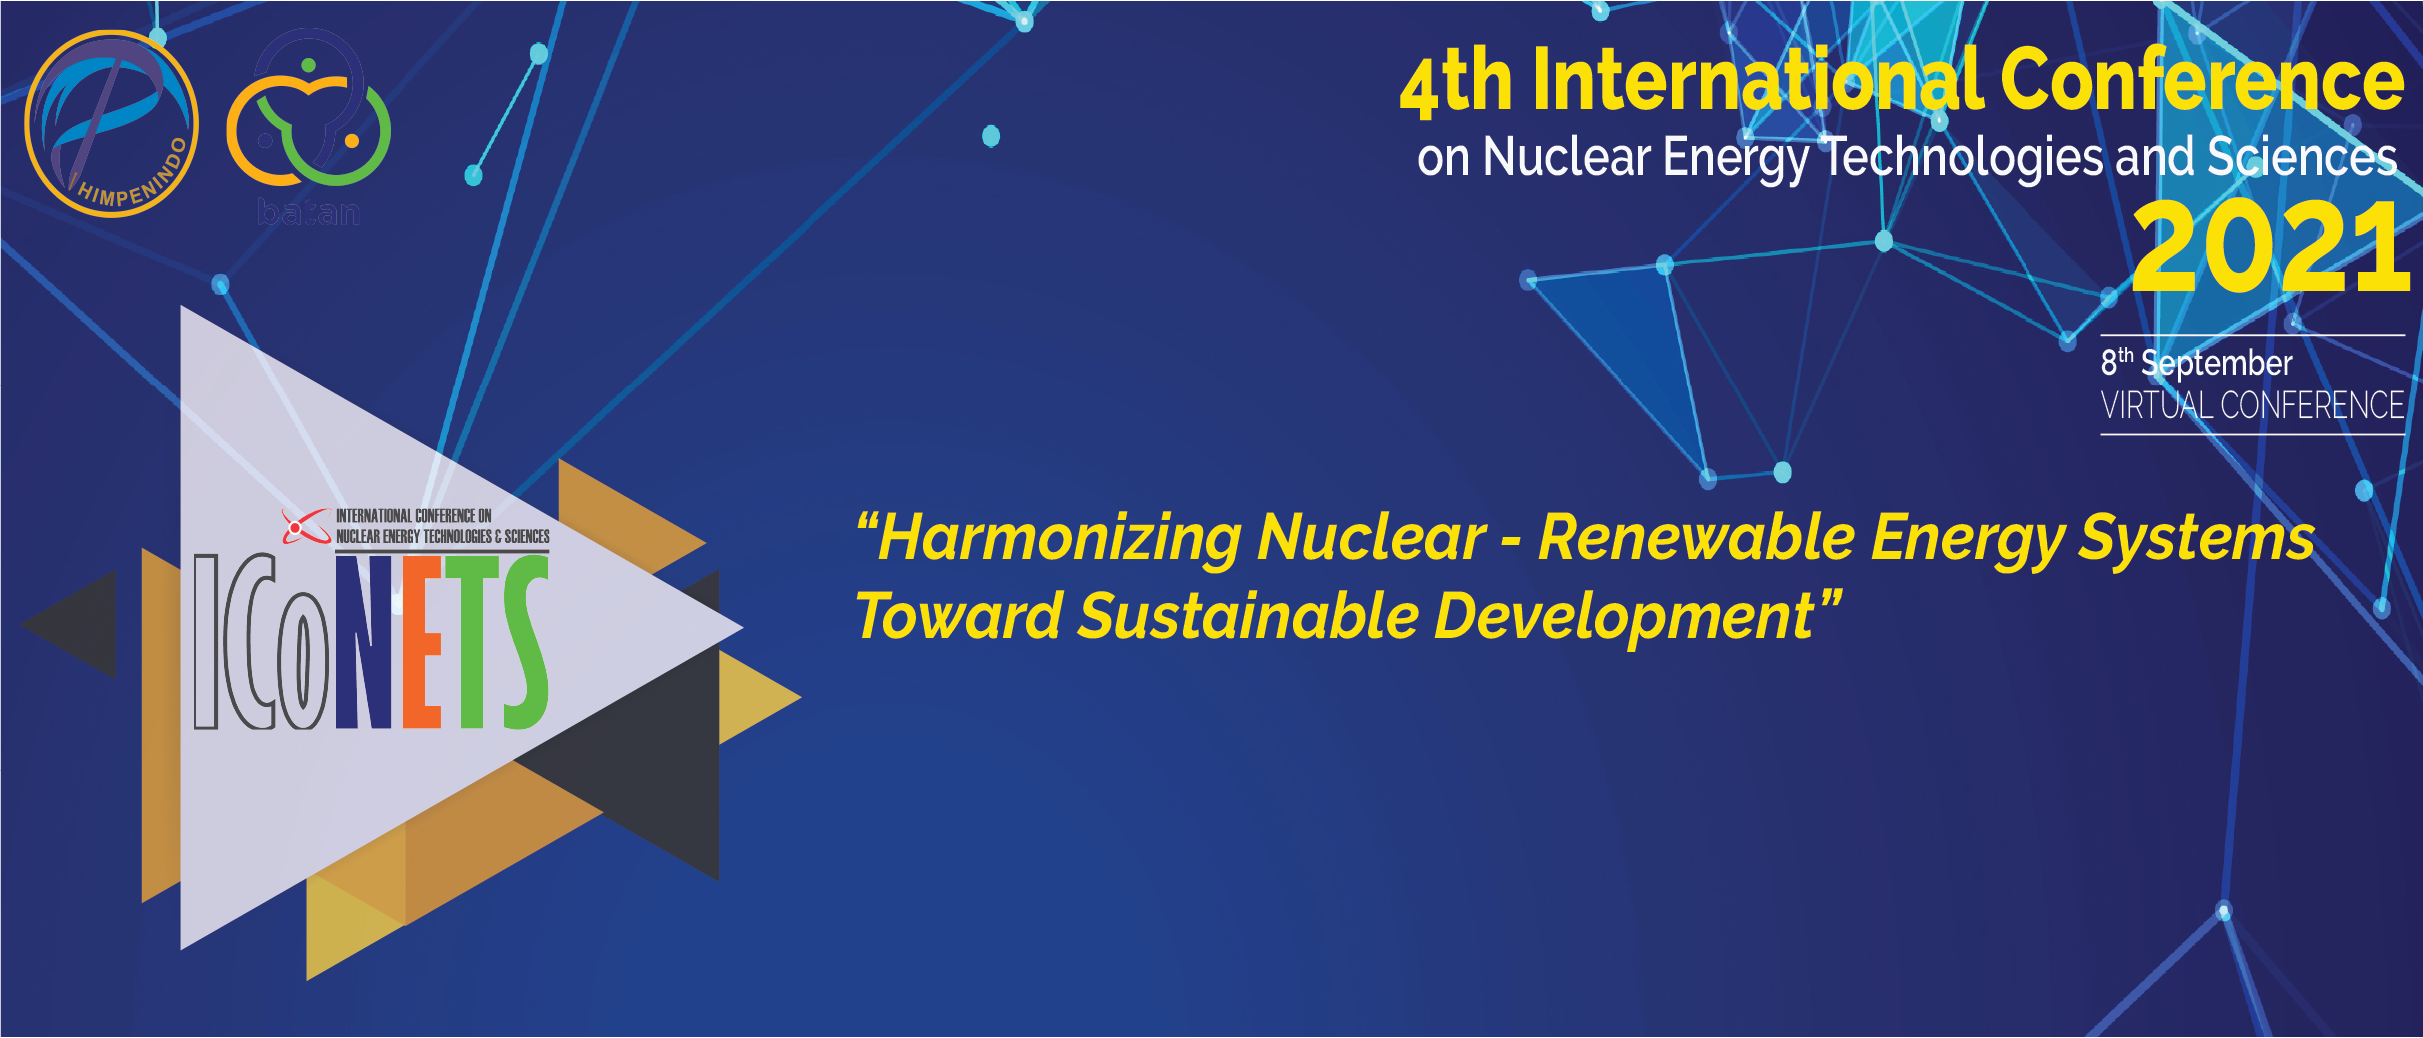 International Conference on Nuclear Energy, Technology and Sciences 2021